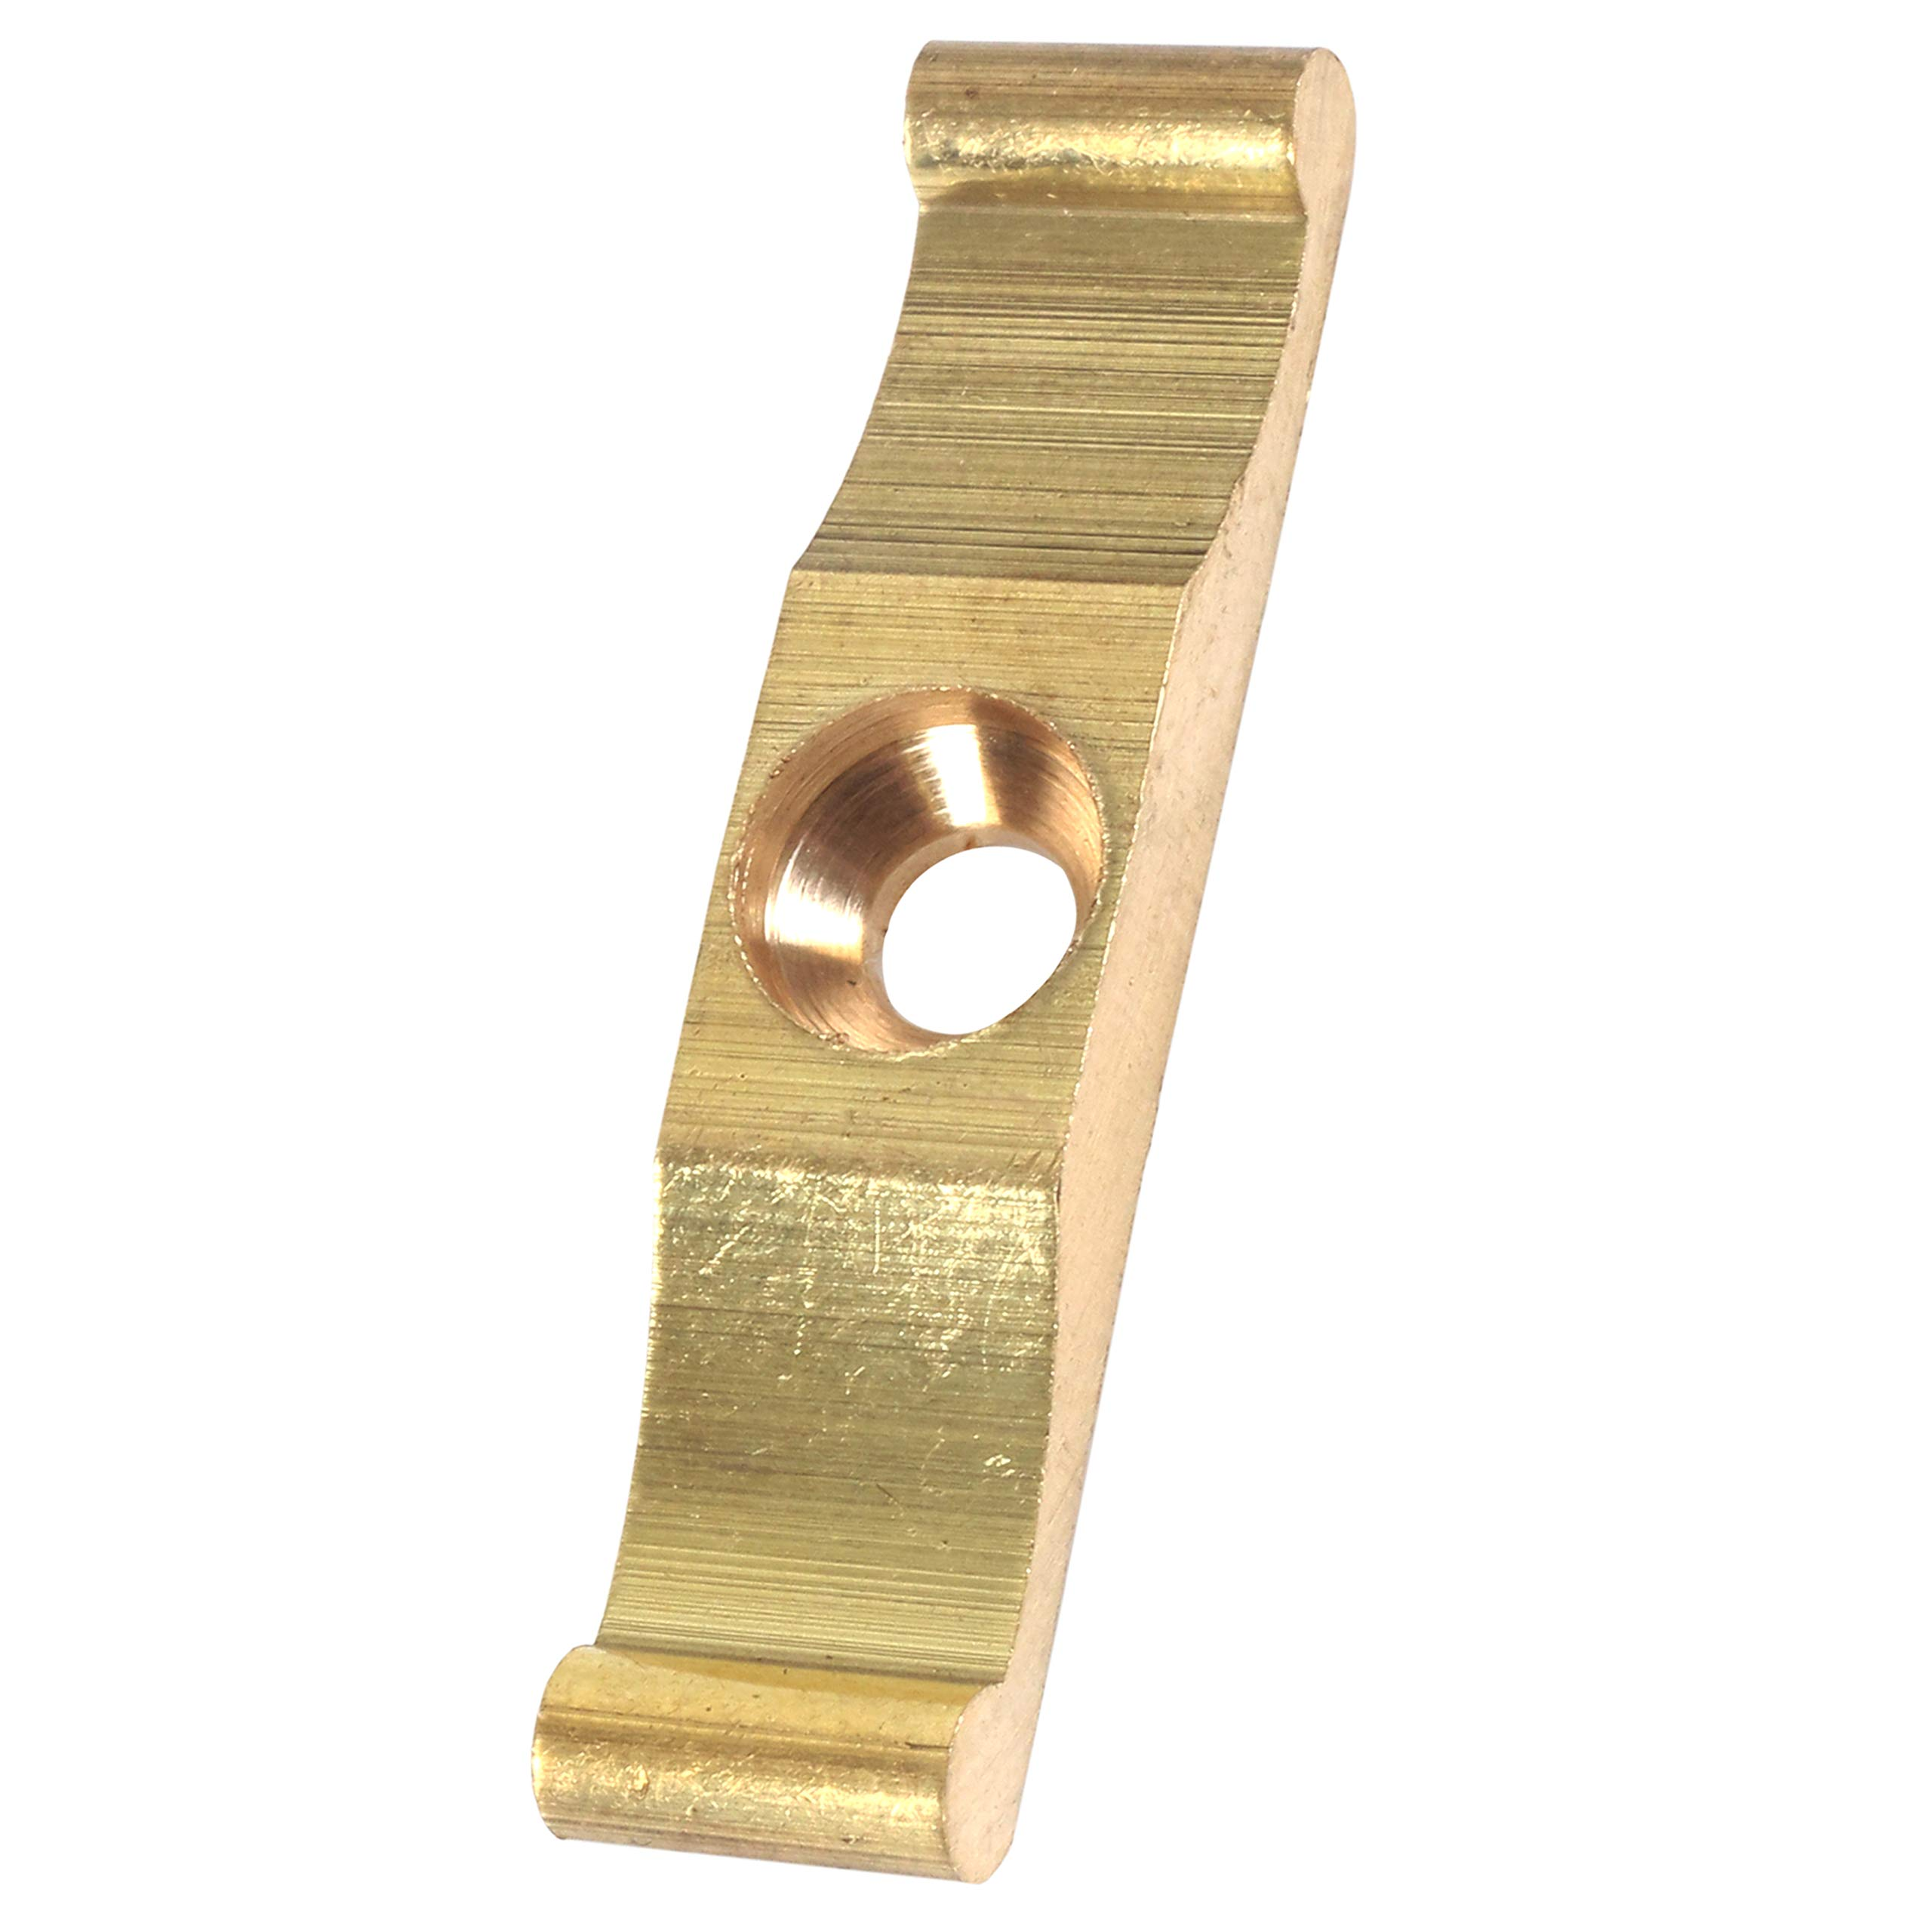 New 24 x TURN BUTTON CATCH GRANNY SHED CUPBOARD DOOR LATCHES 38MM BRASS